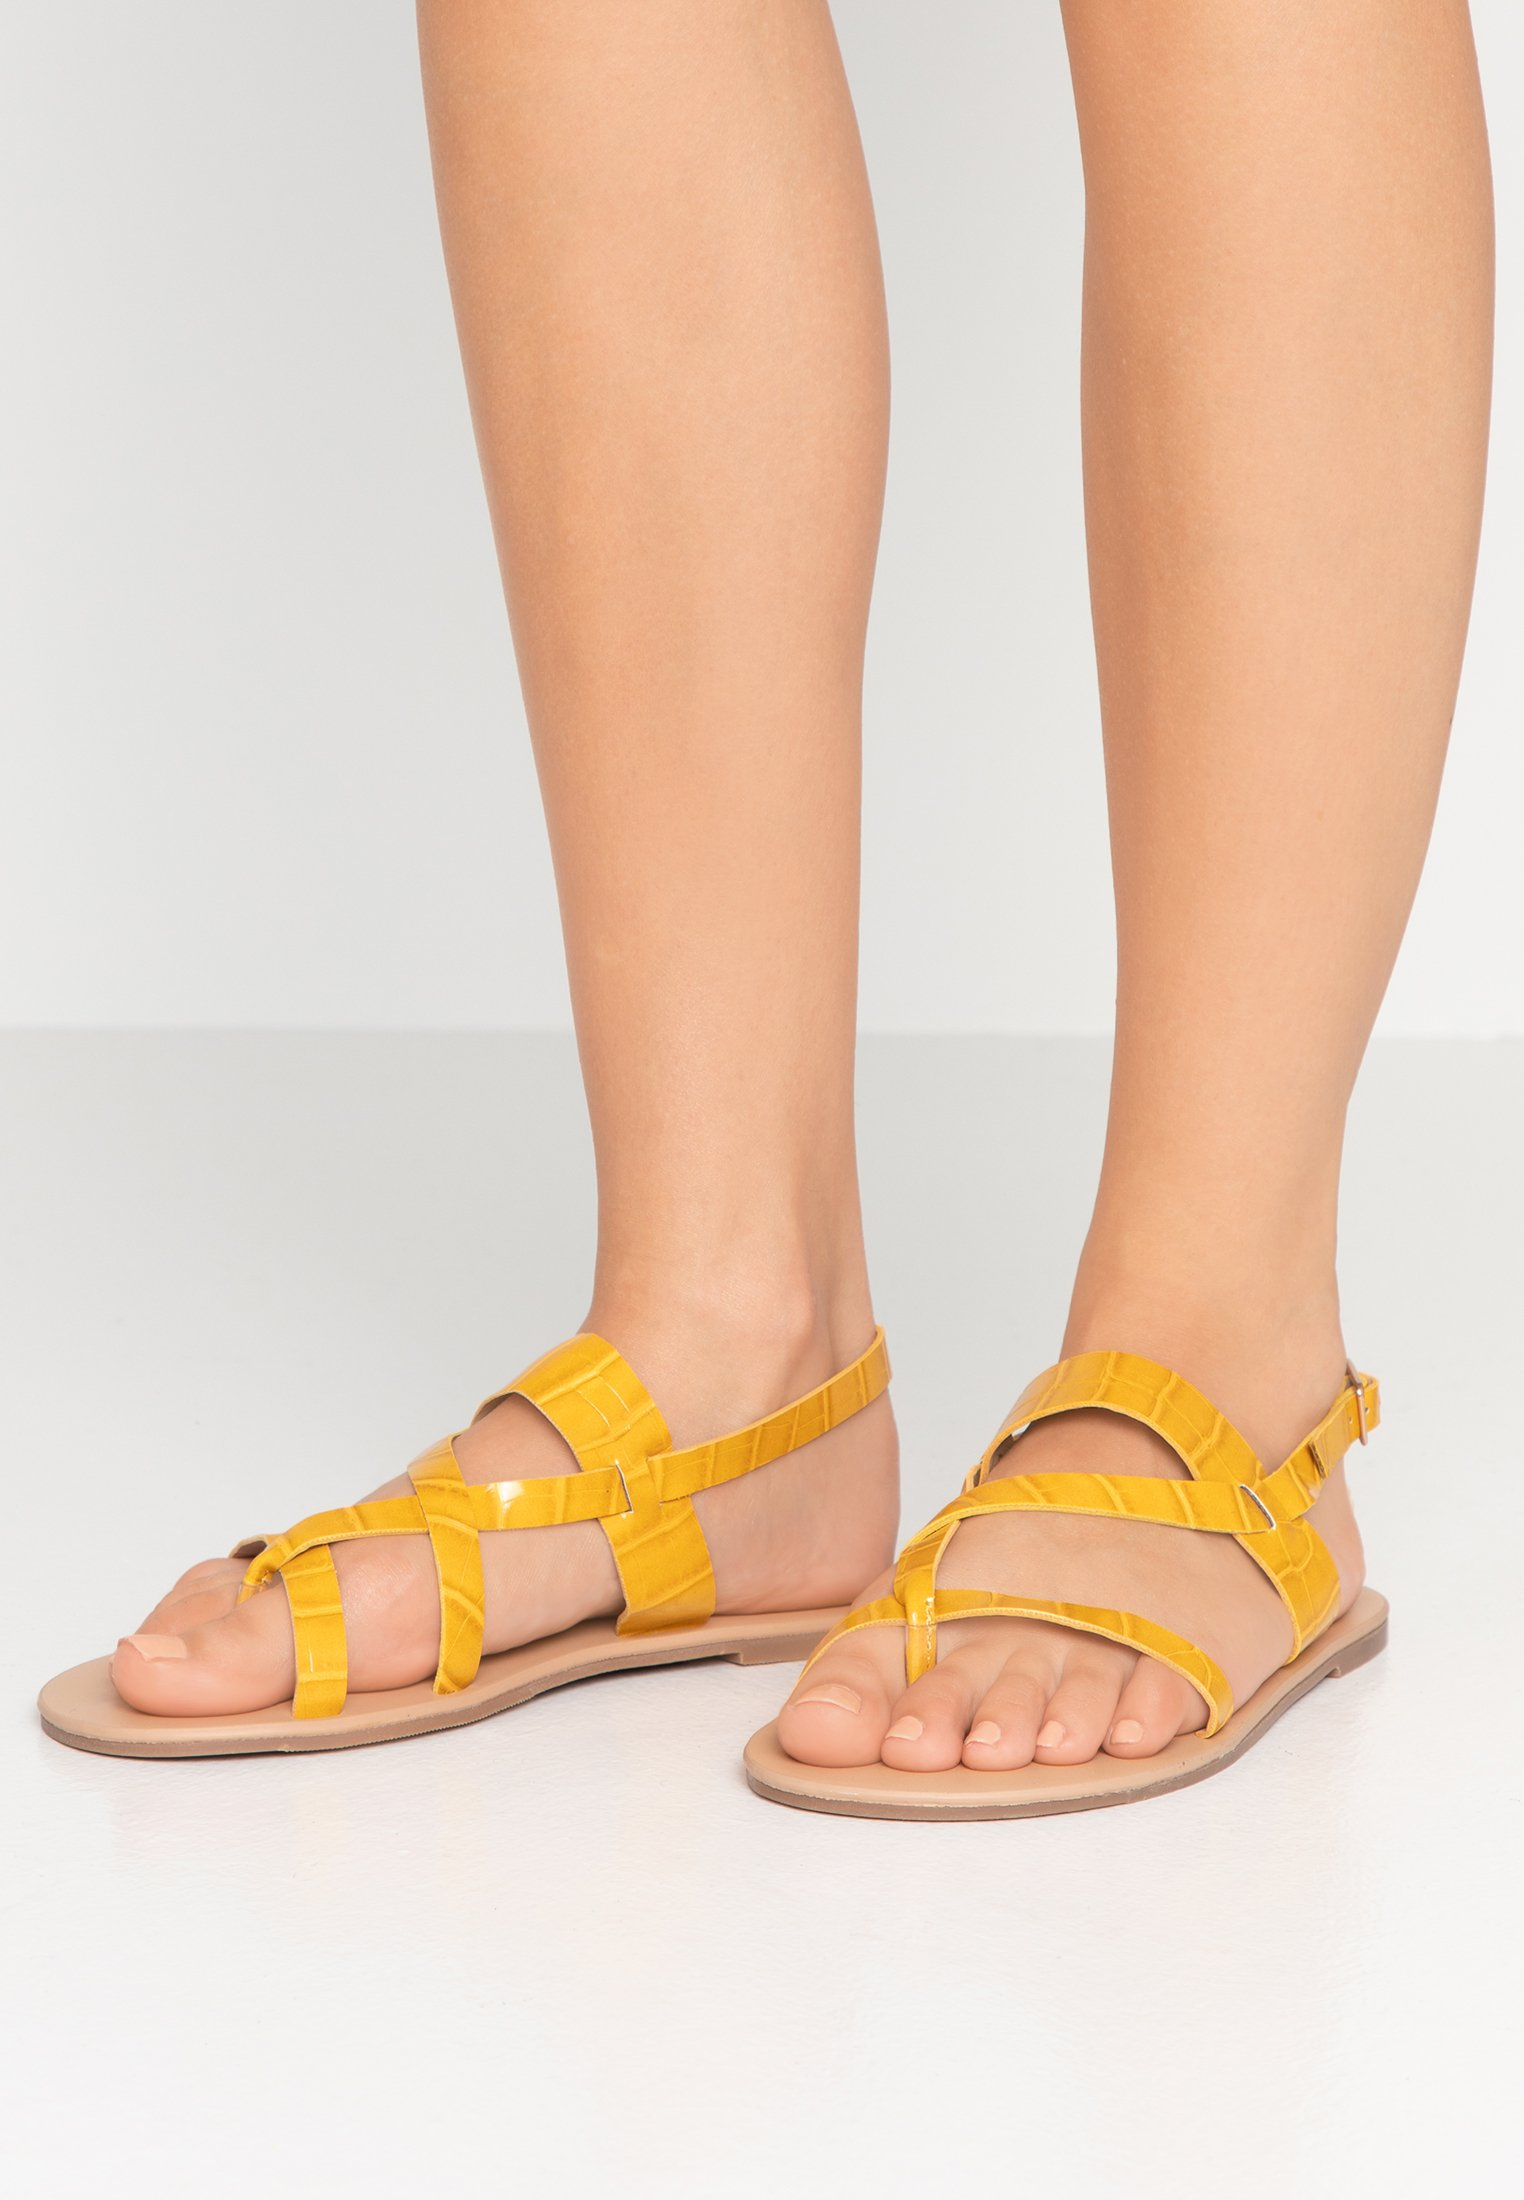 Fabienne Glad Perkins Strap barInfradito Yellow Fit Wide Dorothy Triple T ZOXiuPk